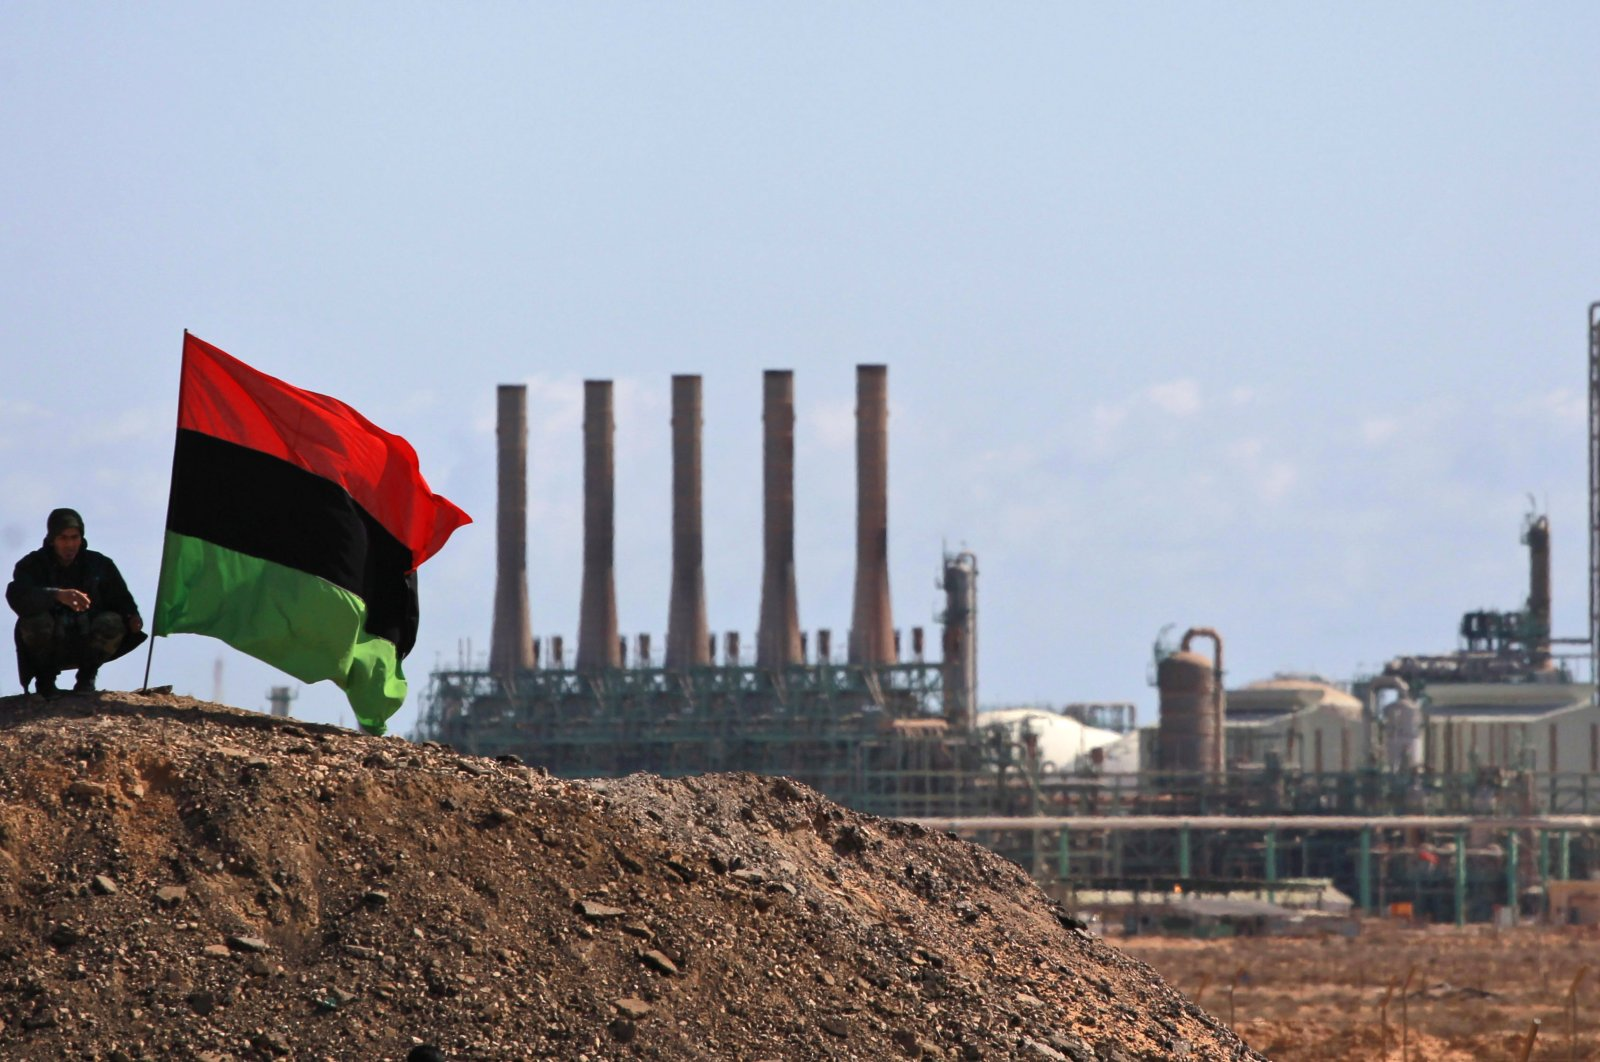 A Libyan rebel, part of the forces against Libyan leader Moammar Gadhafi, sits next to a pre-Gadhafi flag as he guards outside the refinery in Ras Lanuf, eastern Libya, on March 7, 2011. (AP File Photo)